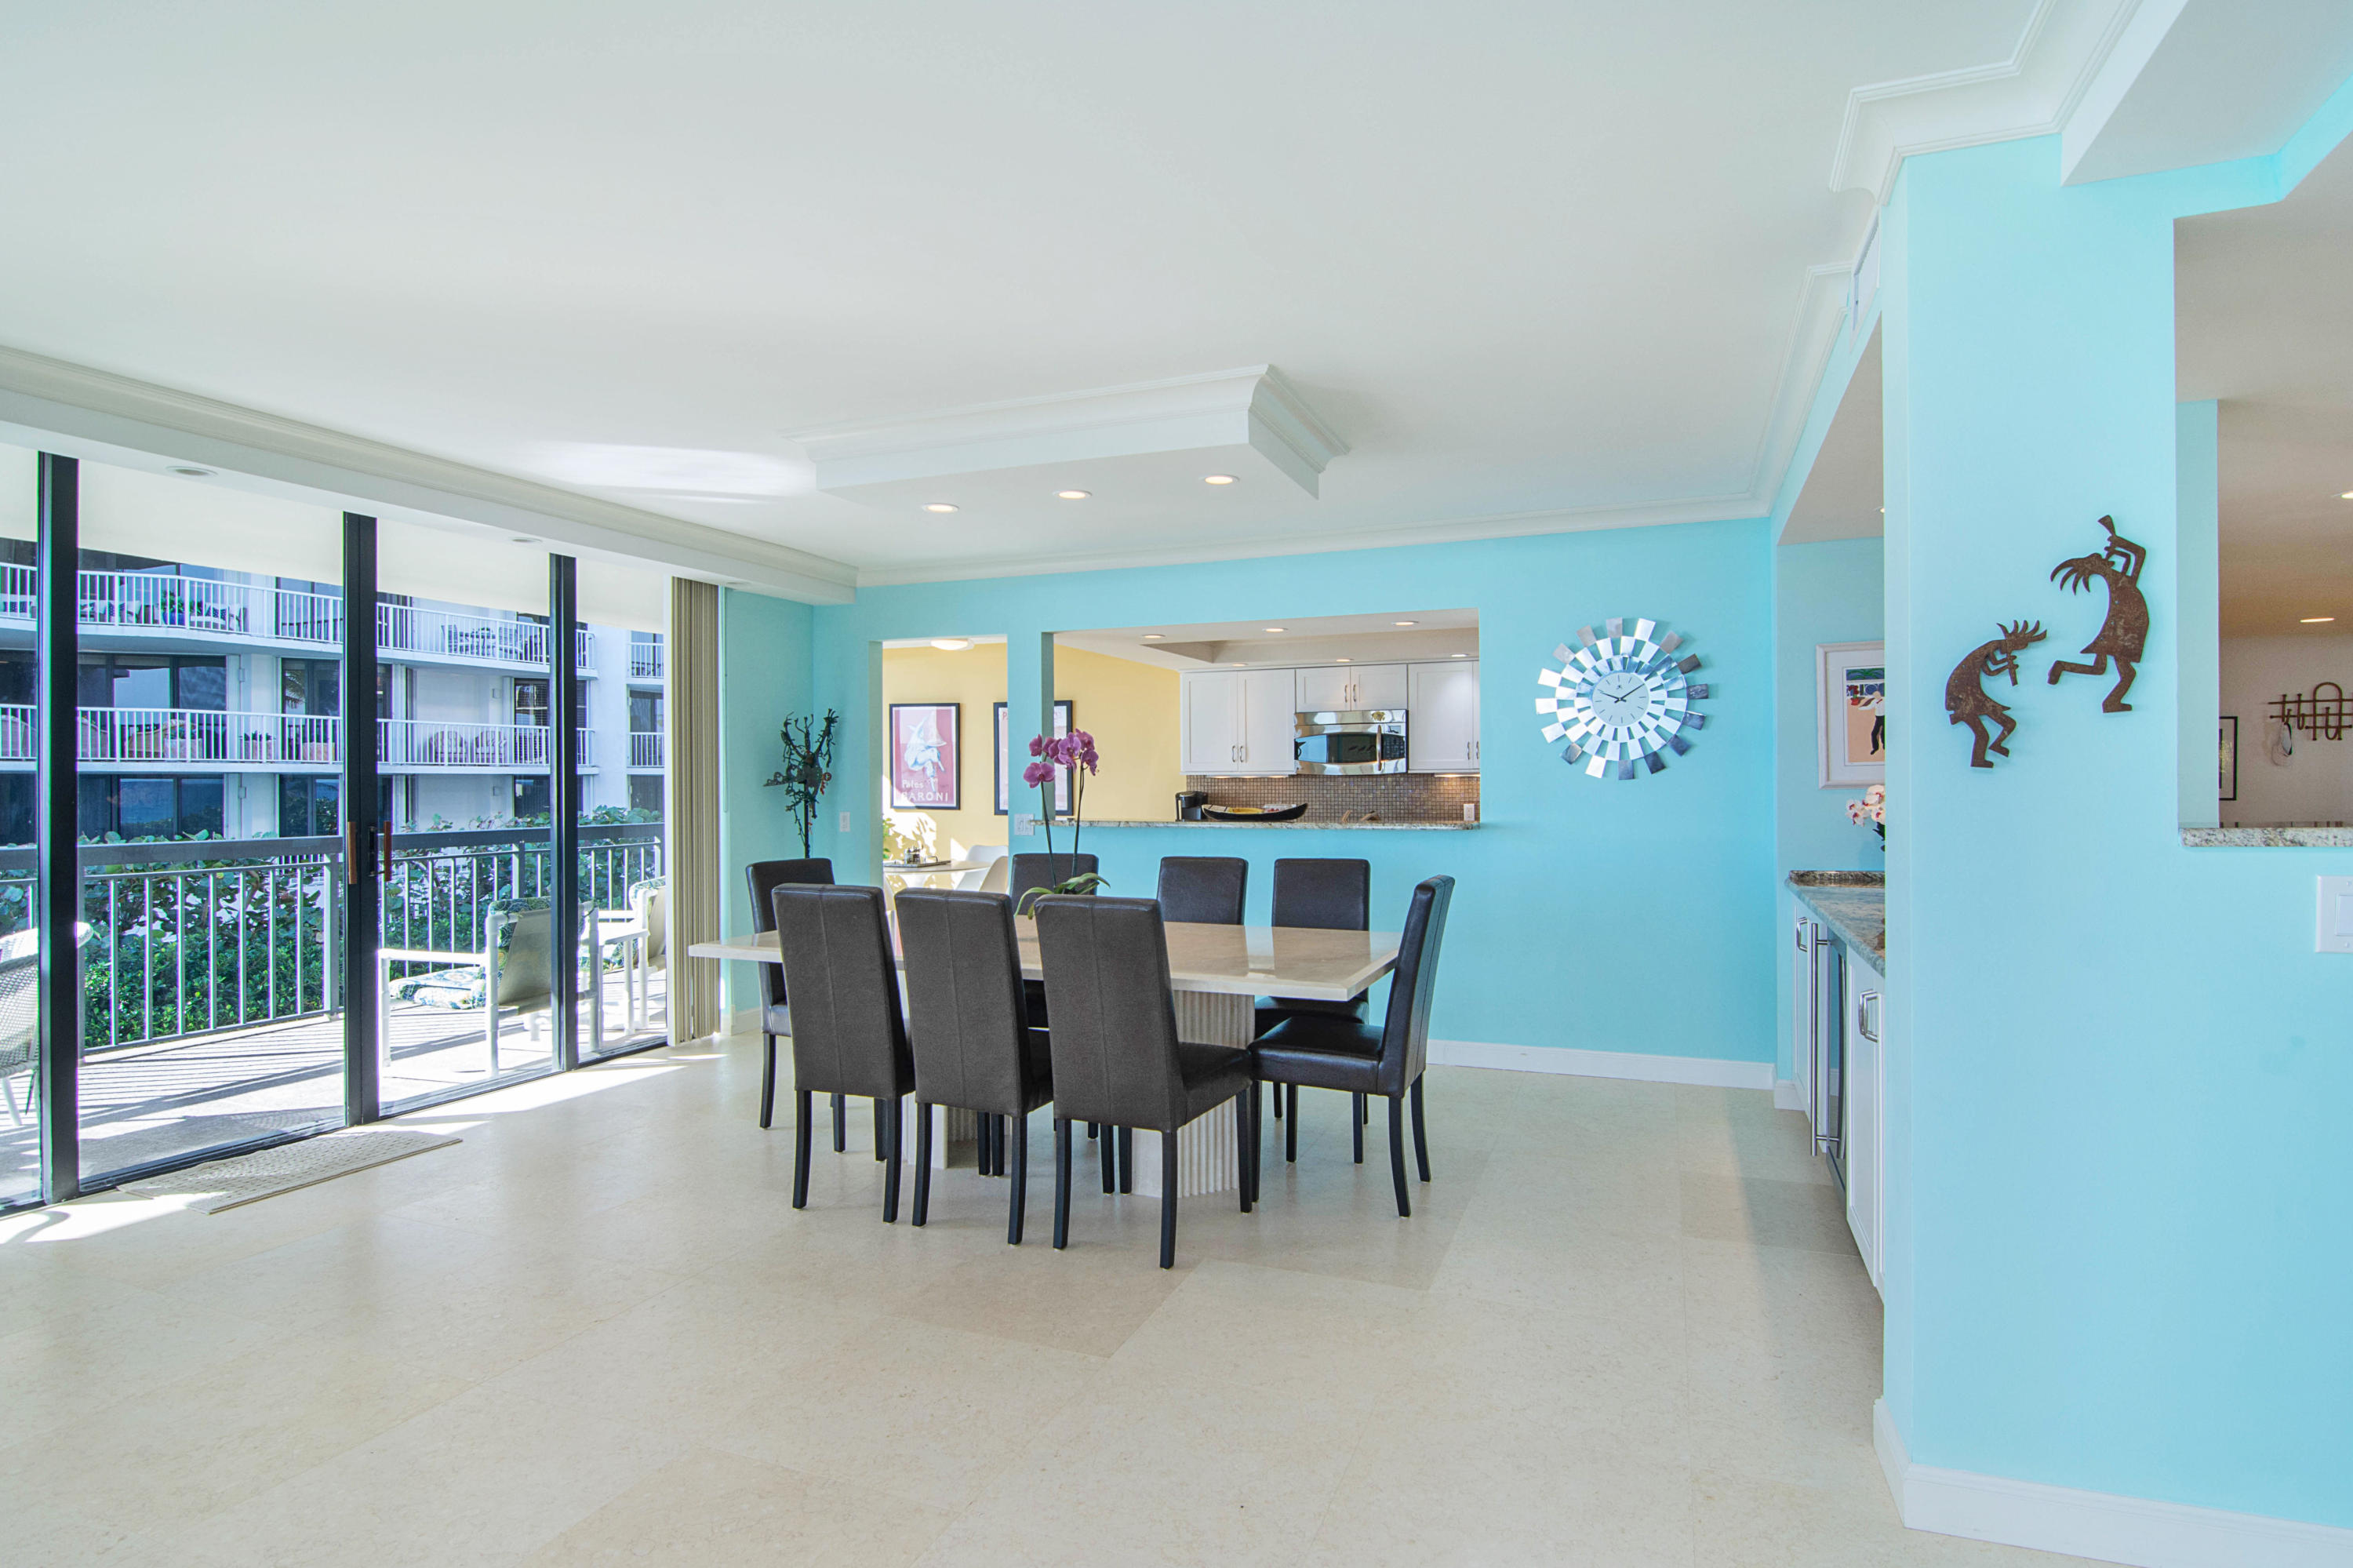 CARLTON PLACE REALTY